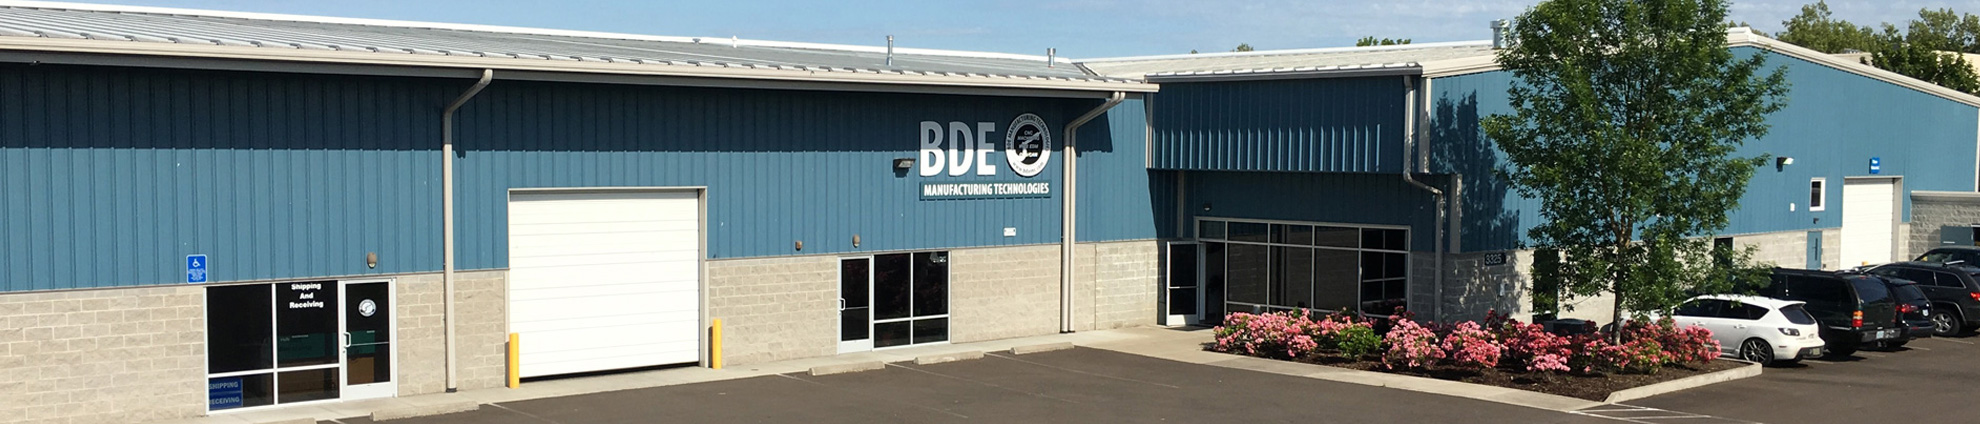 BDE Manufacturing Technologies Company Building